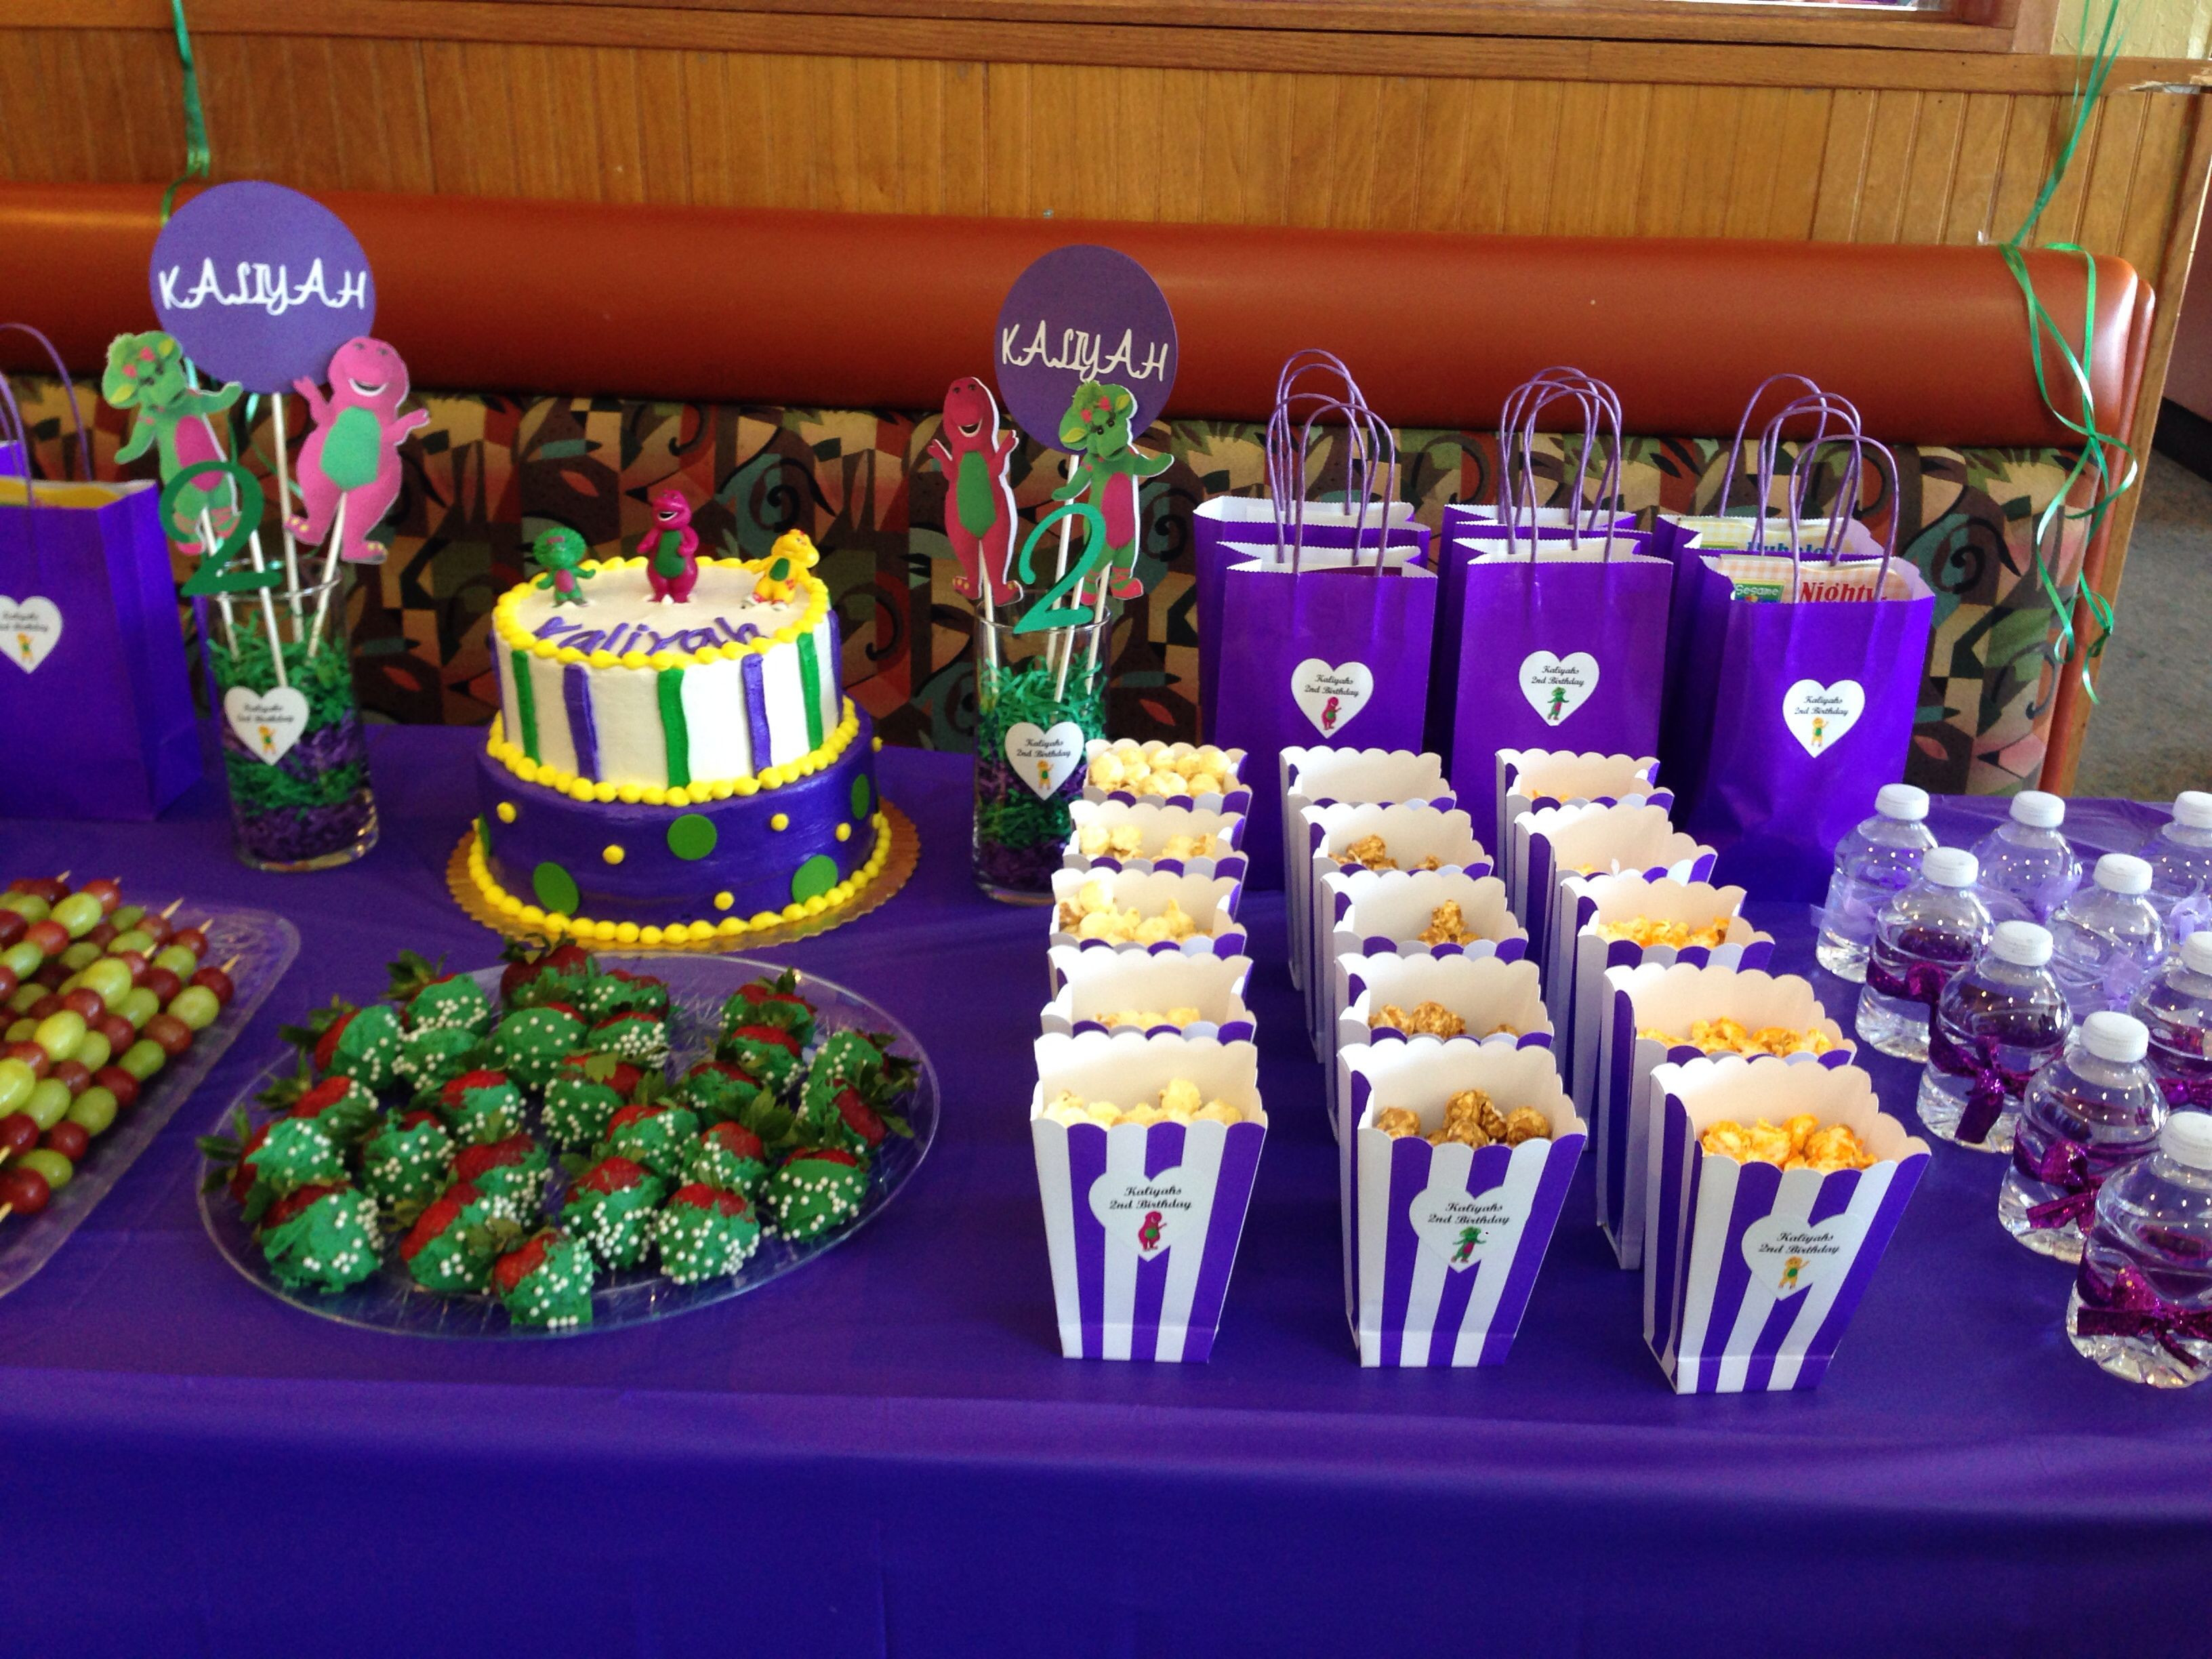 Best ideas about Barney Birthday Party Supplies . Save or Pin Barney birthday party theme Barney party ideas Barney Now.